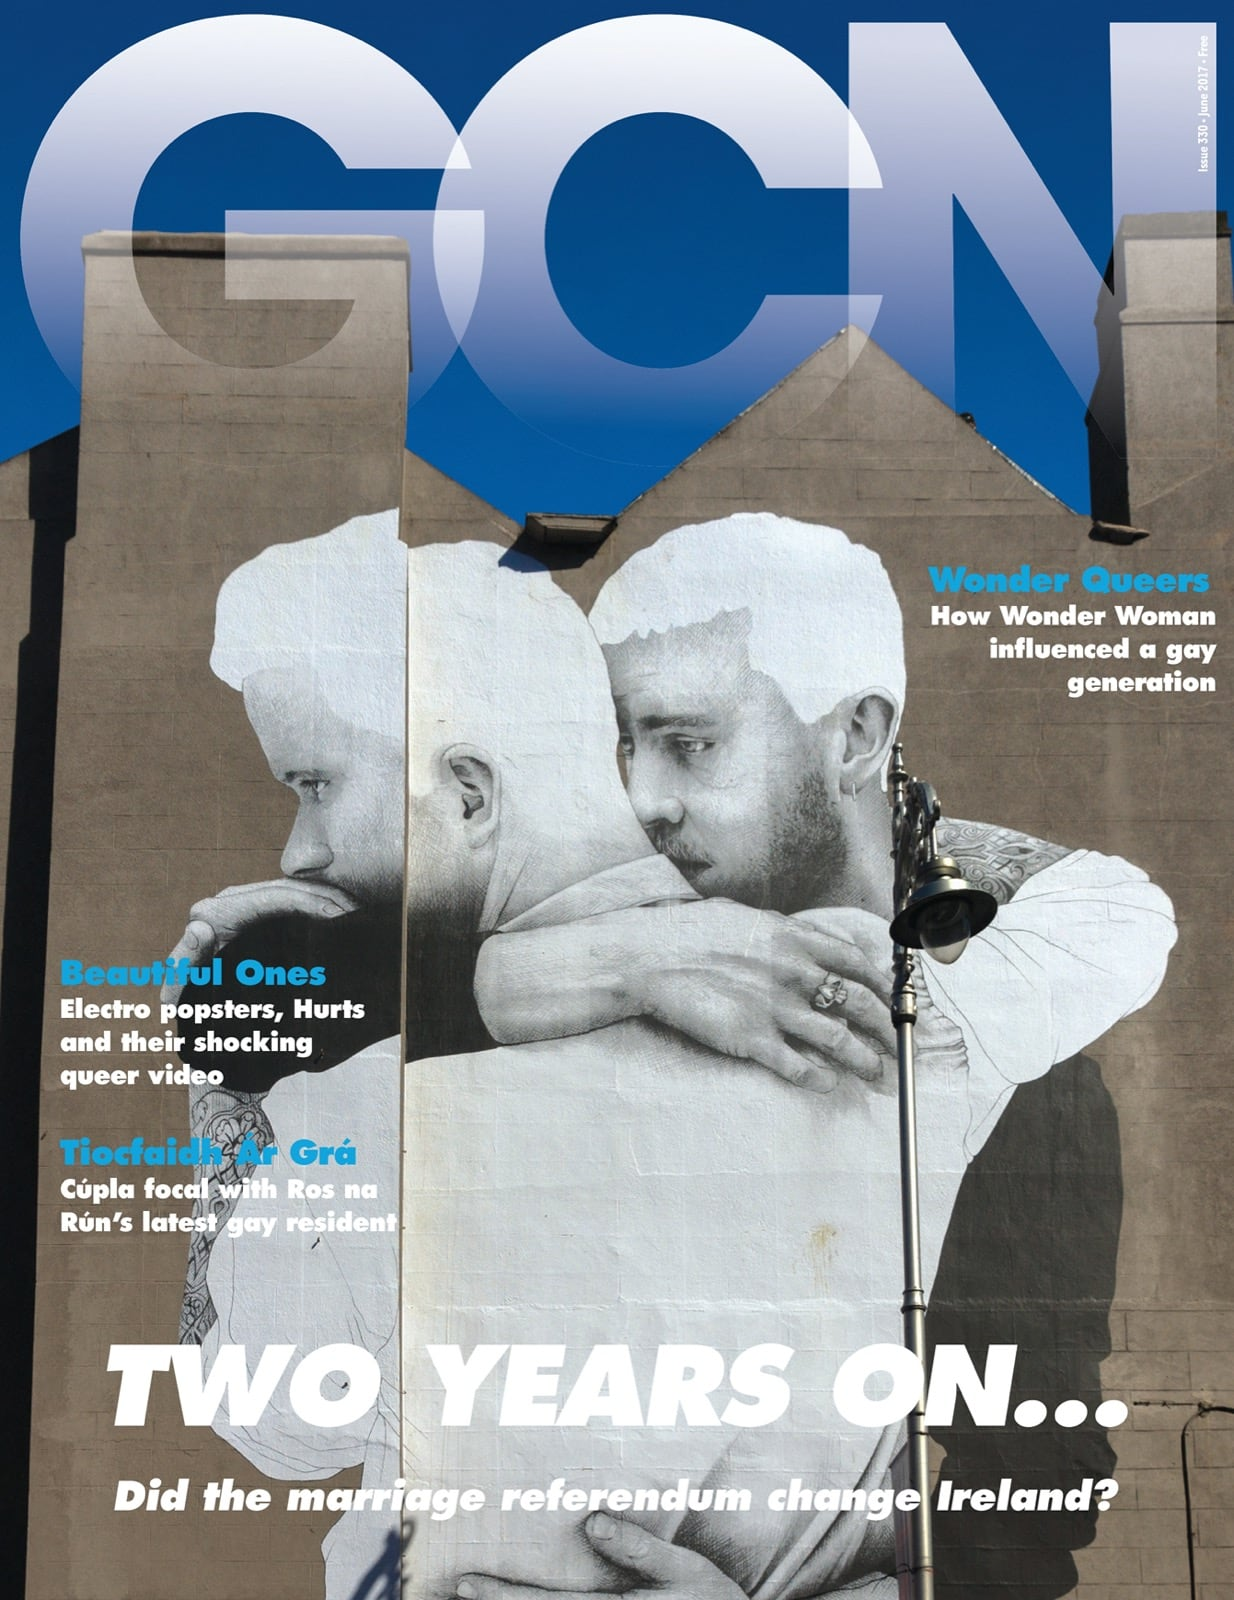 Some of GCN's covers from 2009 with a giant mural by Joe Caslin of two men embracing on the cover.